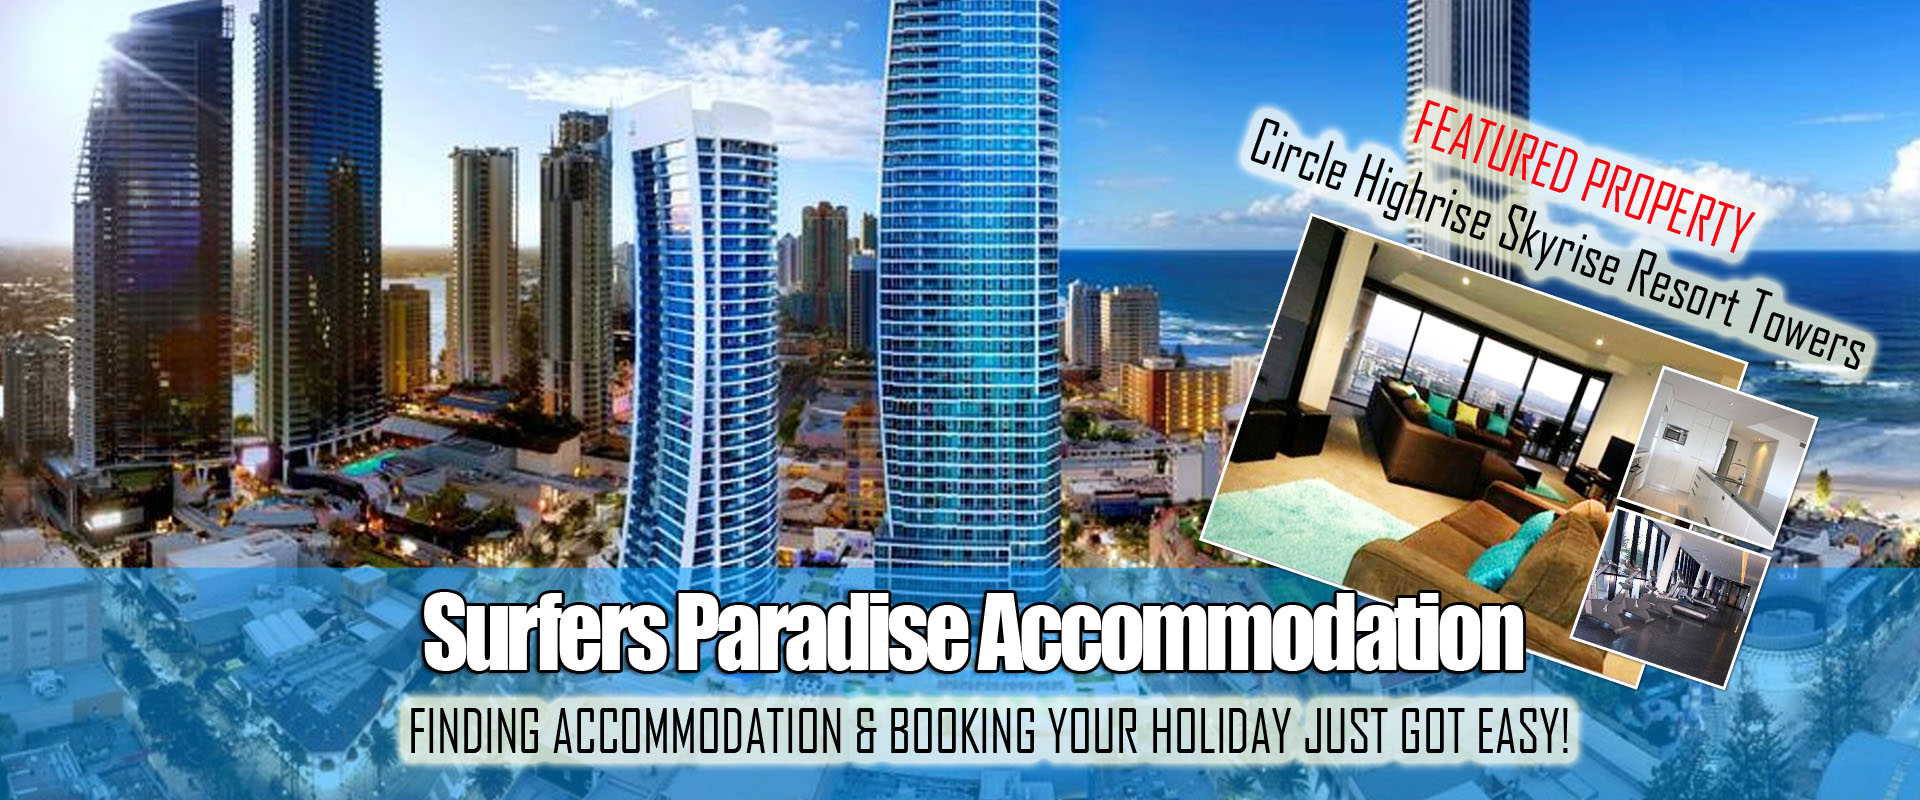 BookToday Gold Coast Australia Accommodation